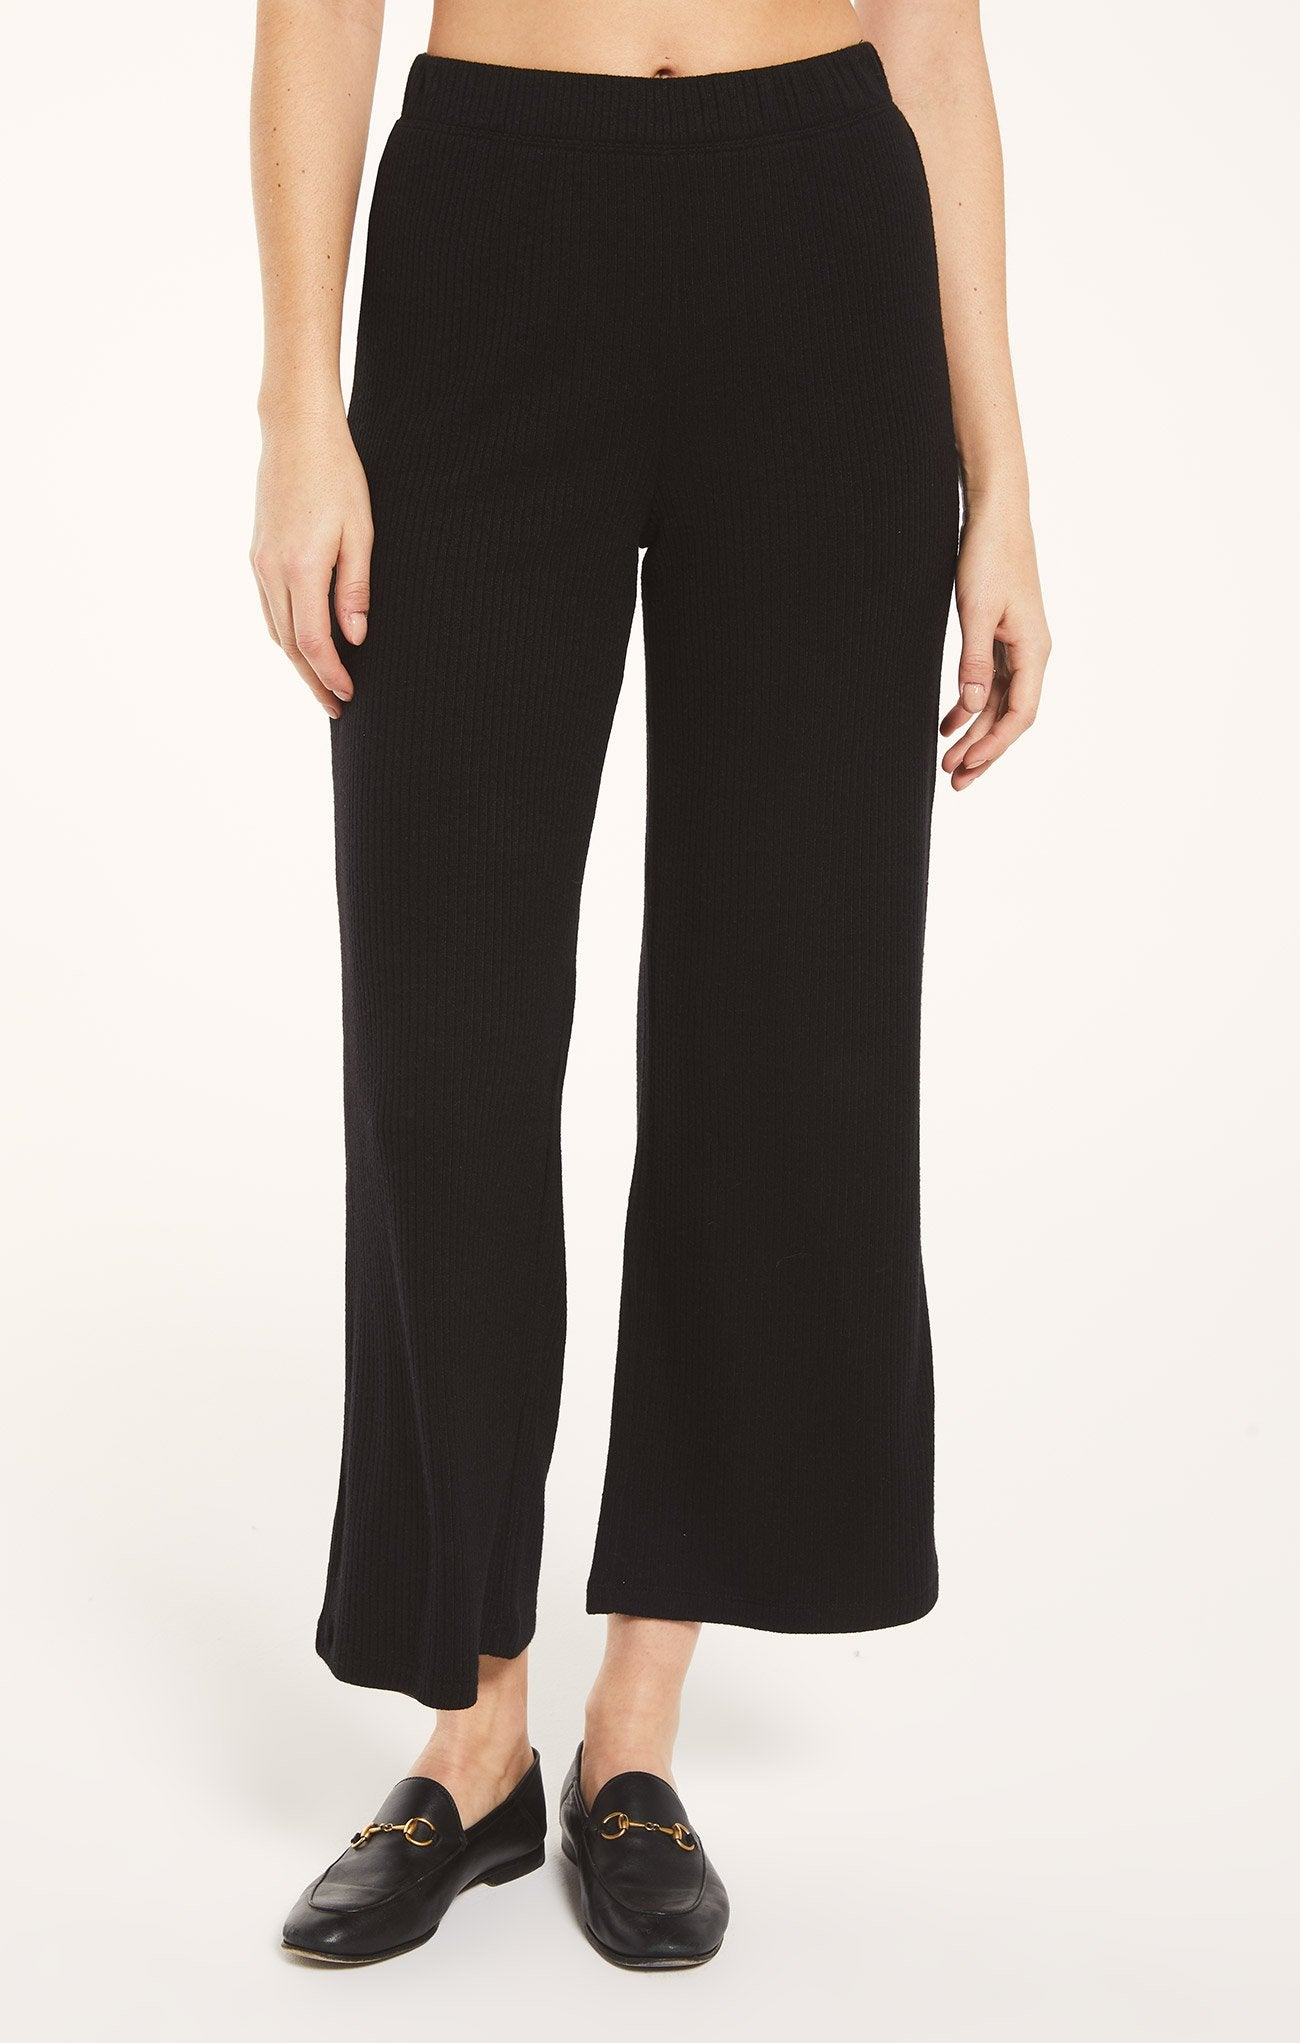 Z SUPPLY GERRI RIB PANT - Penny Lane Boutique